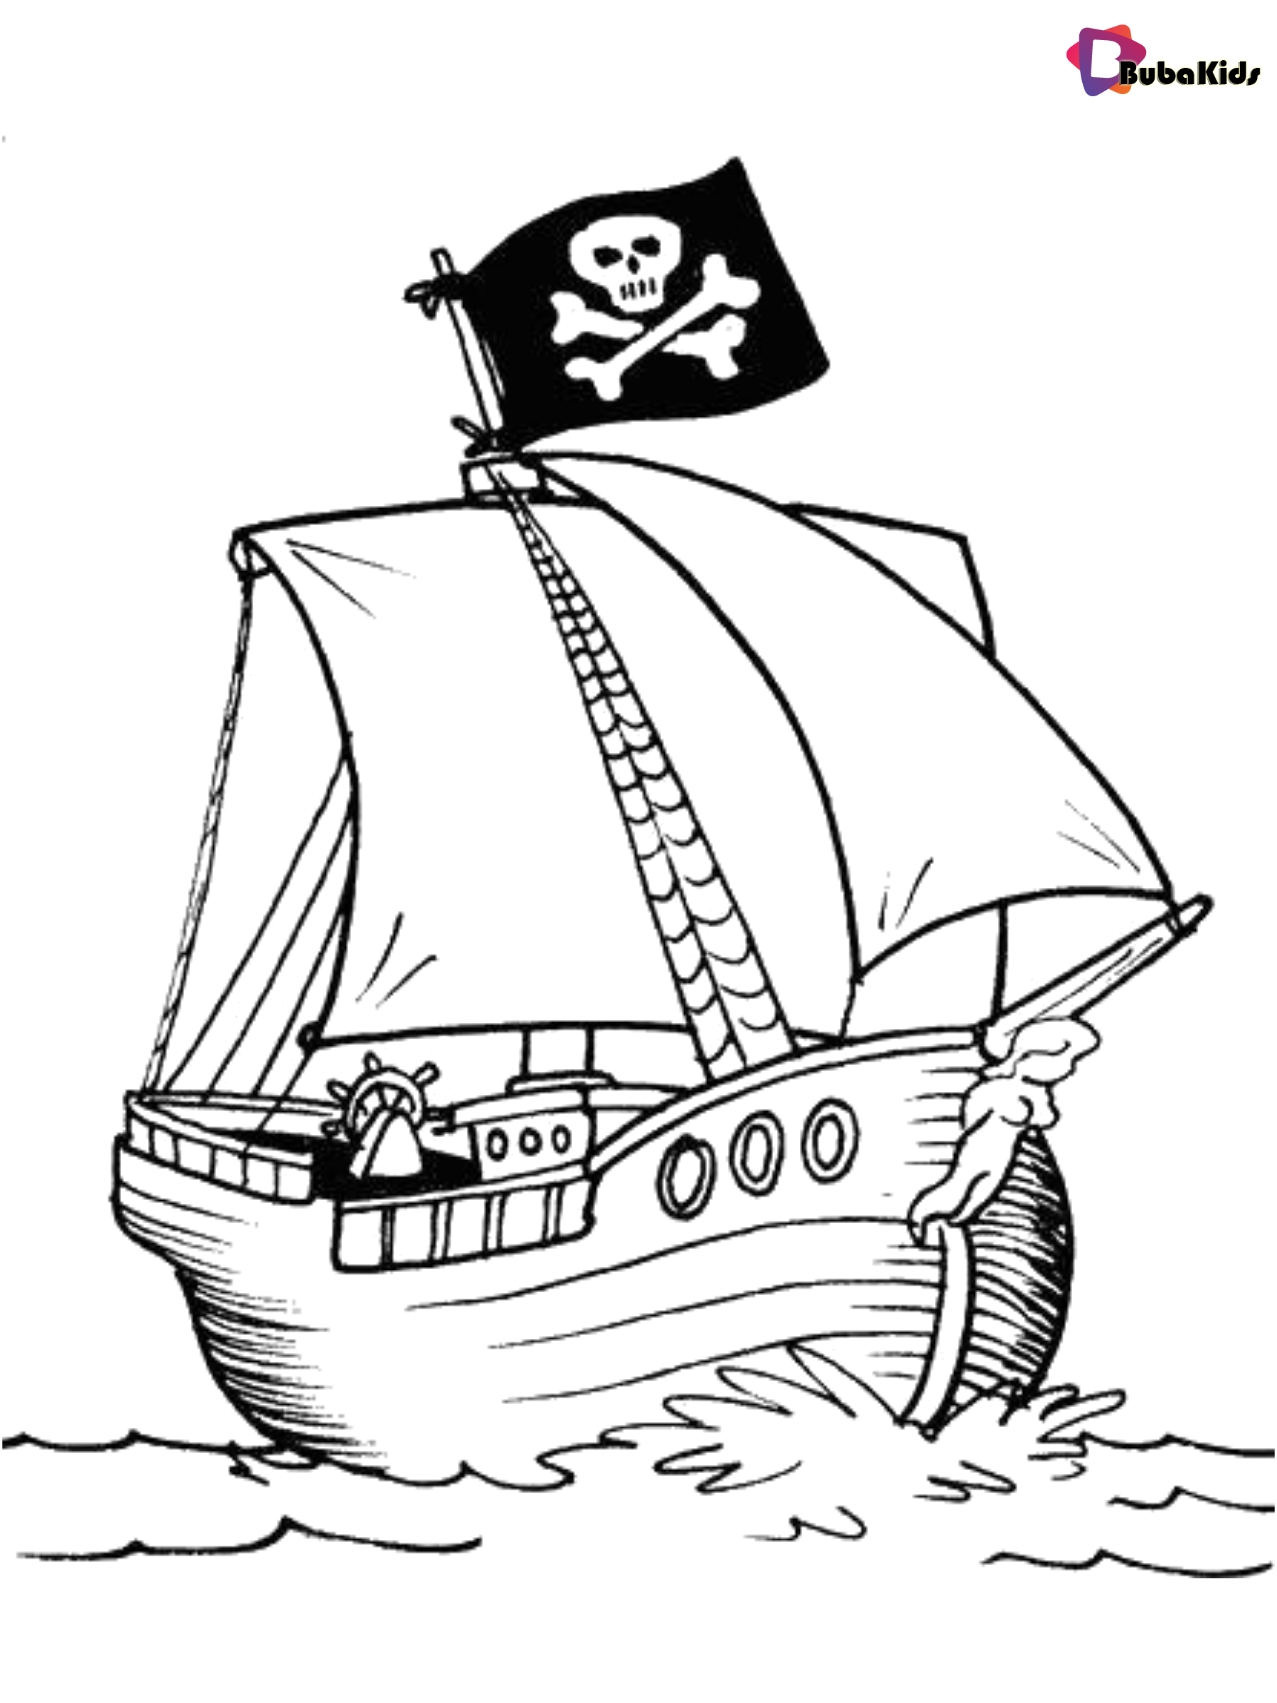 bible ship coloring page coloring picture pirate ship free printable bubakidscom page ship bible coloring